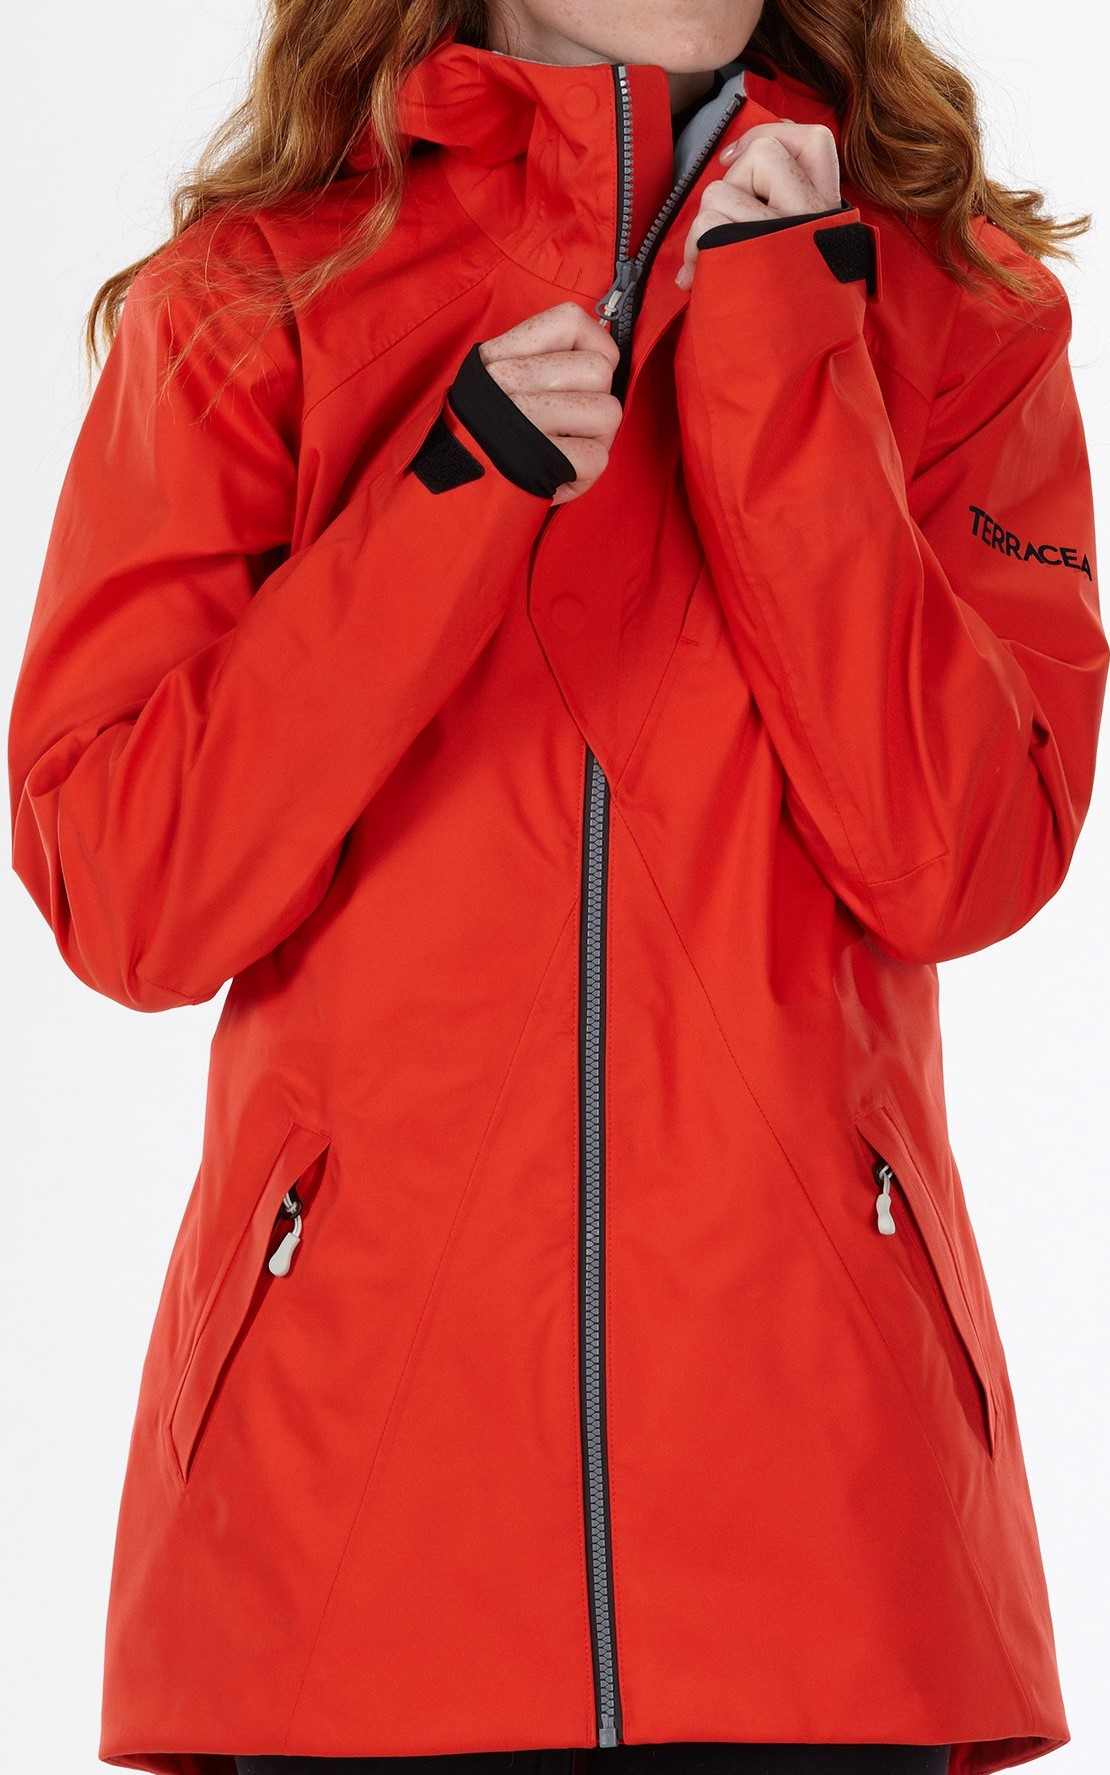 image terracea-womens-trillium-3l-shell-jacket-jpg